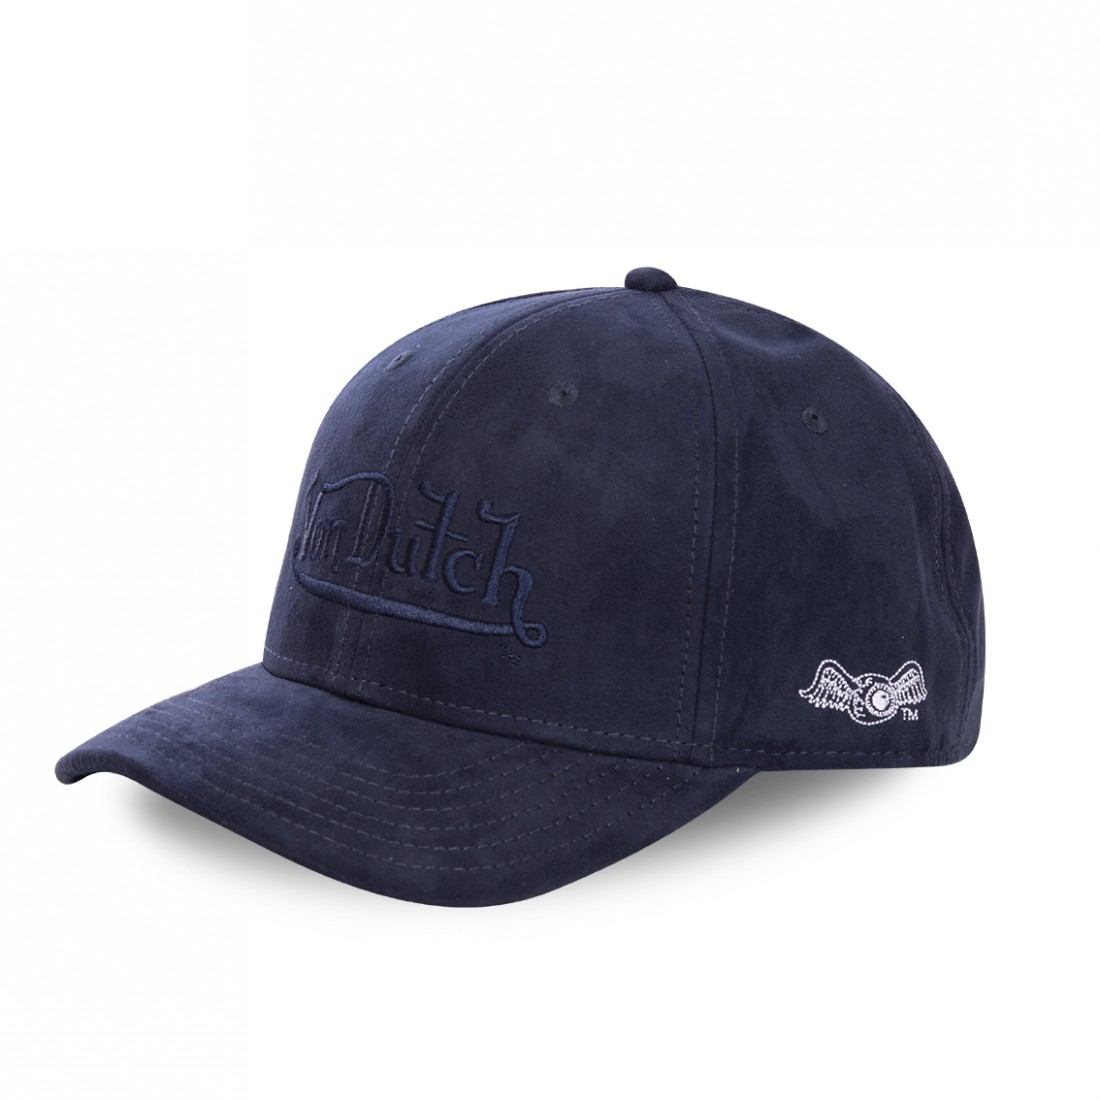 Von Dutch Forest Baseball Cap